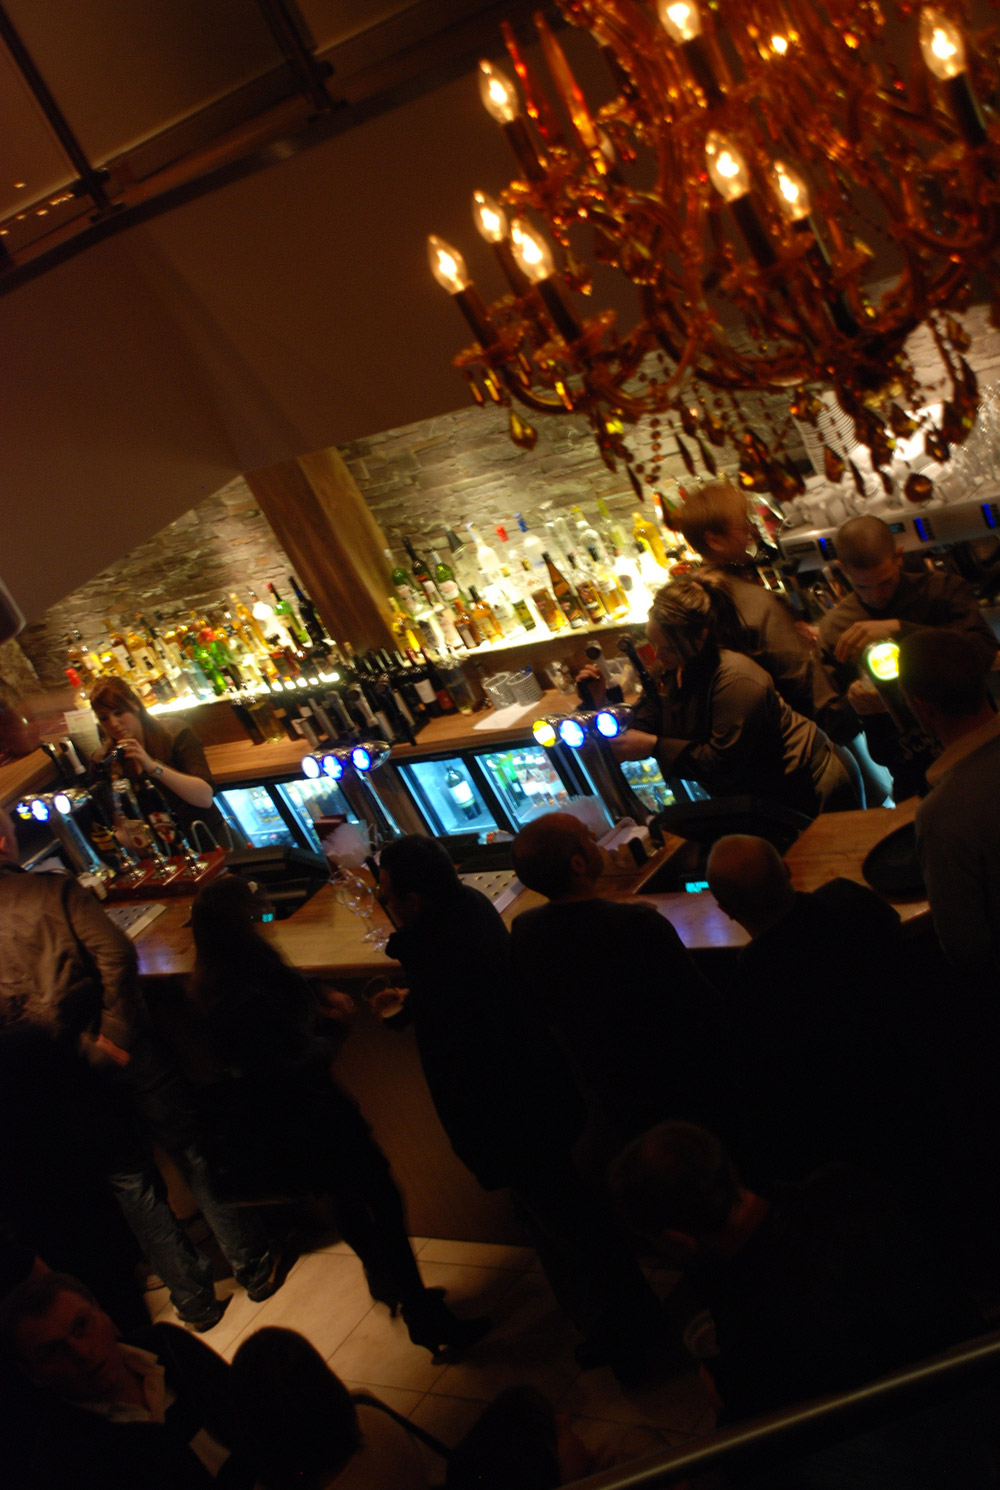 bar view from above